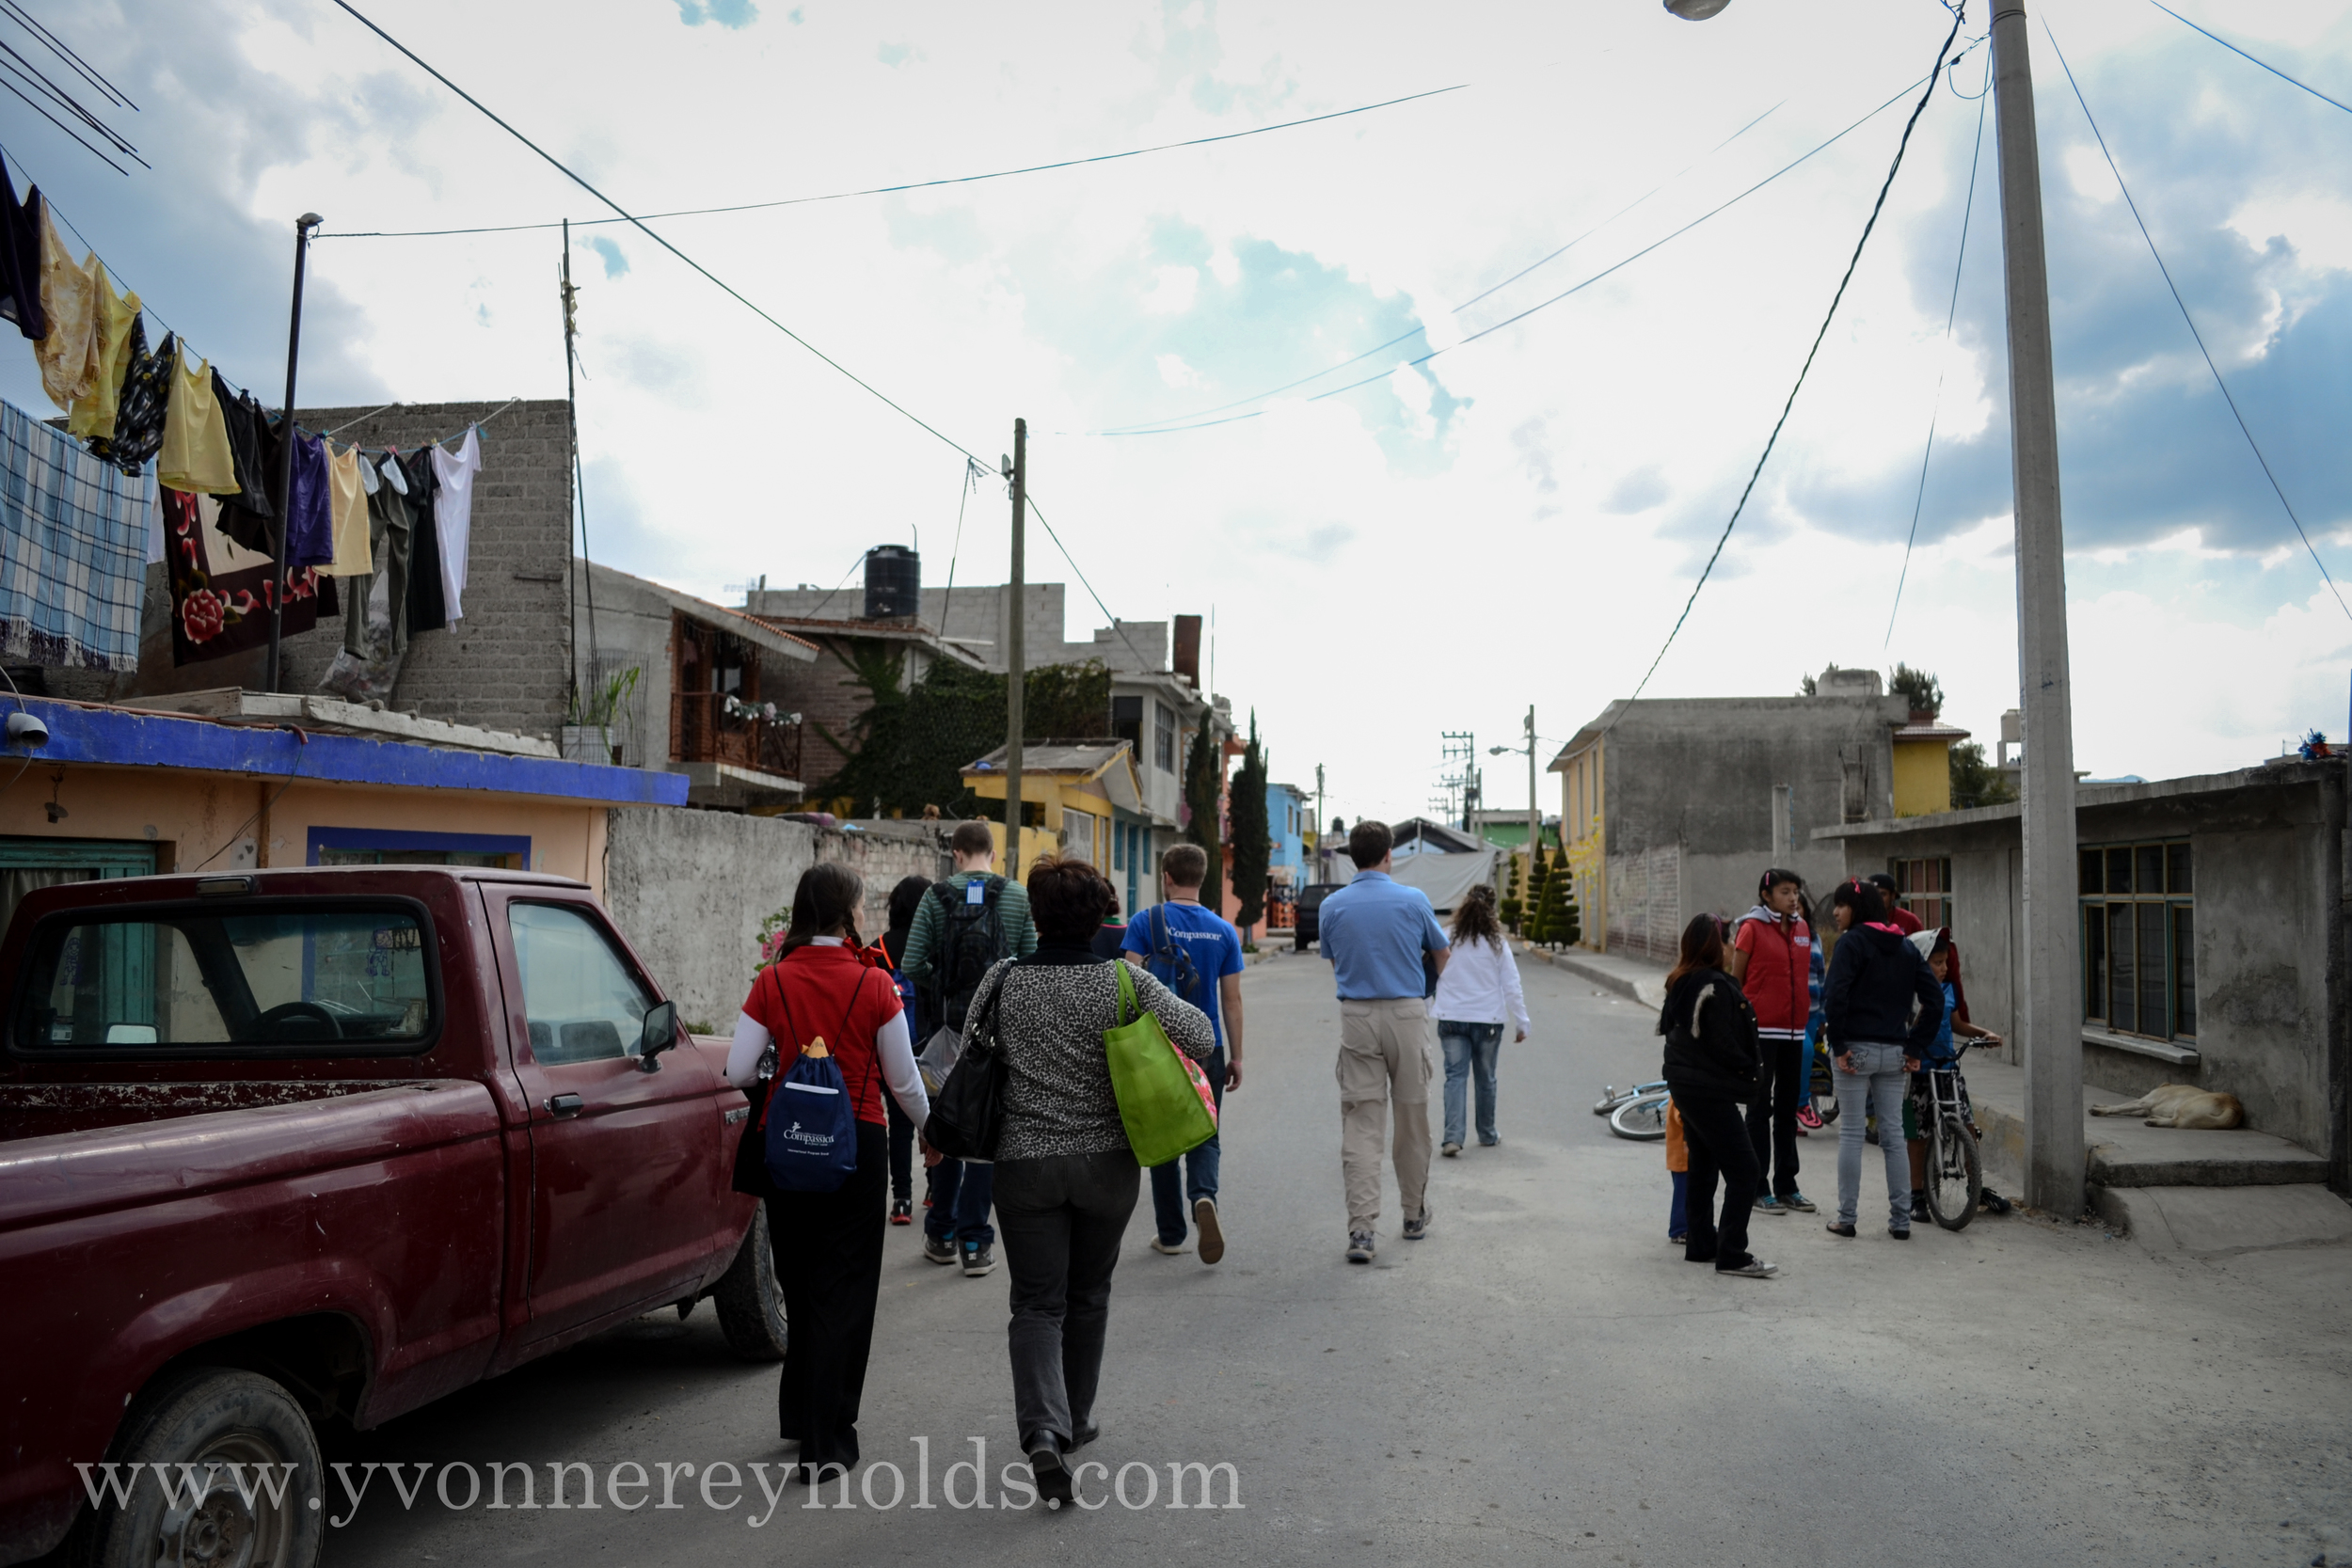 Our walk to Felix's home in Mexico